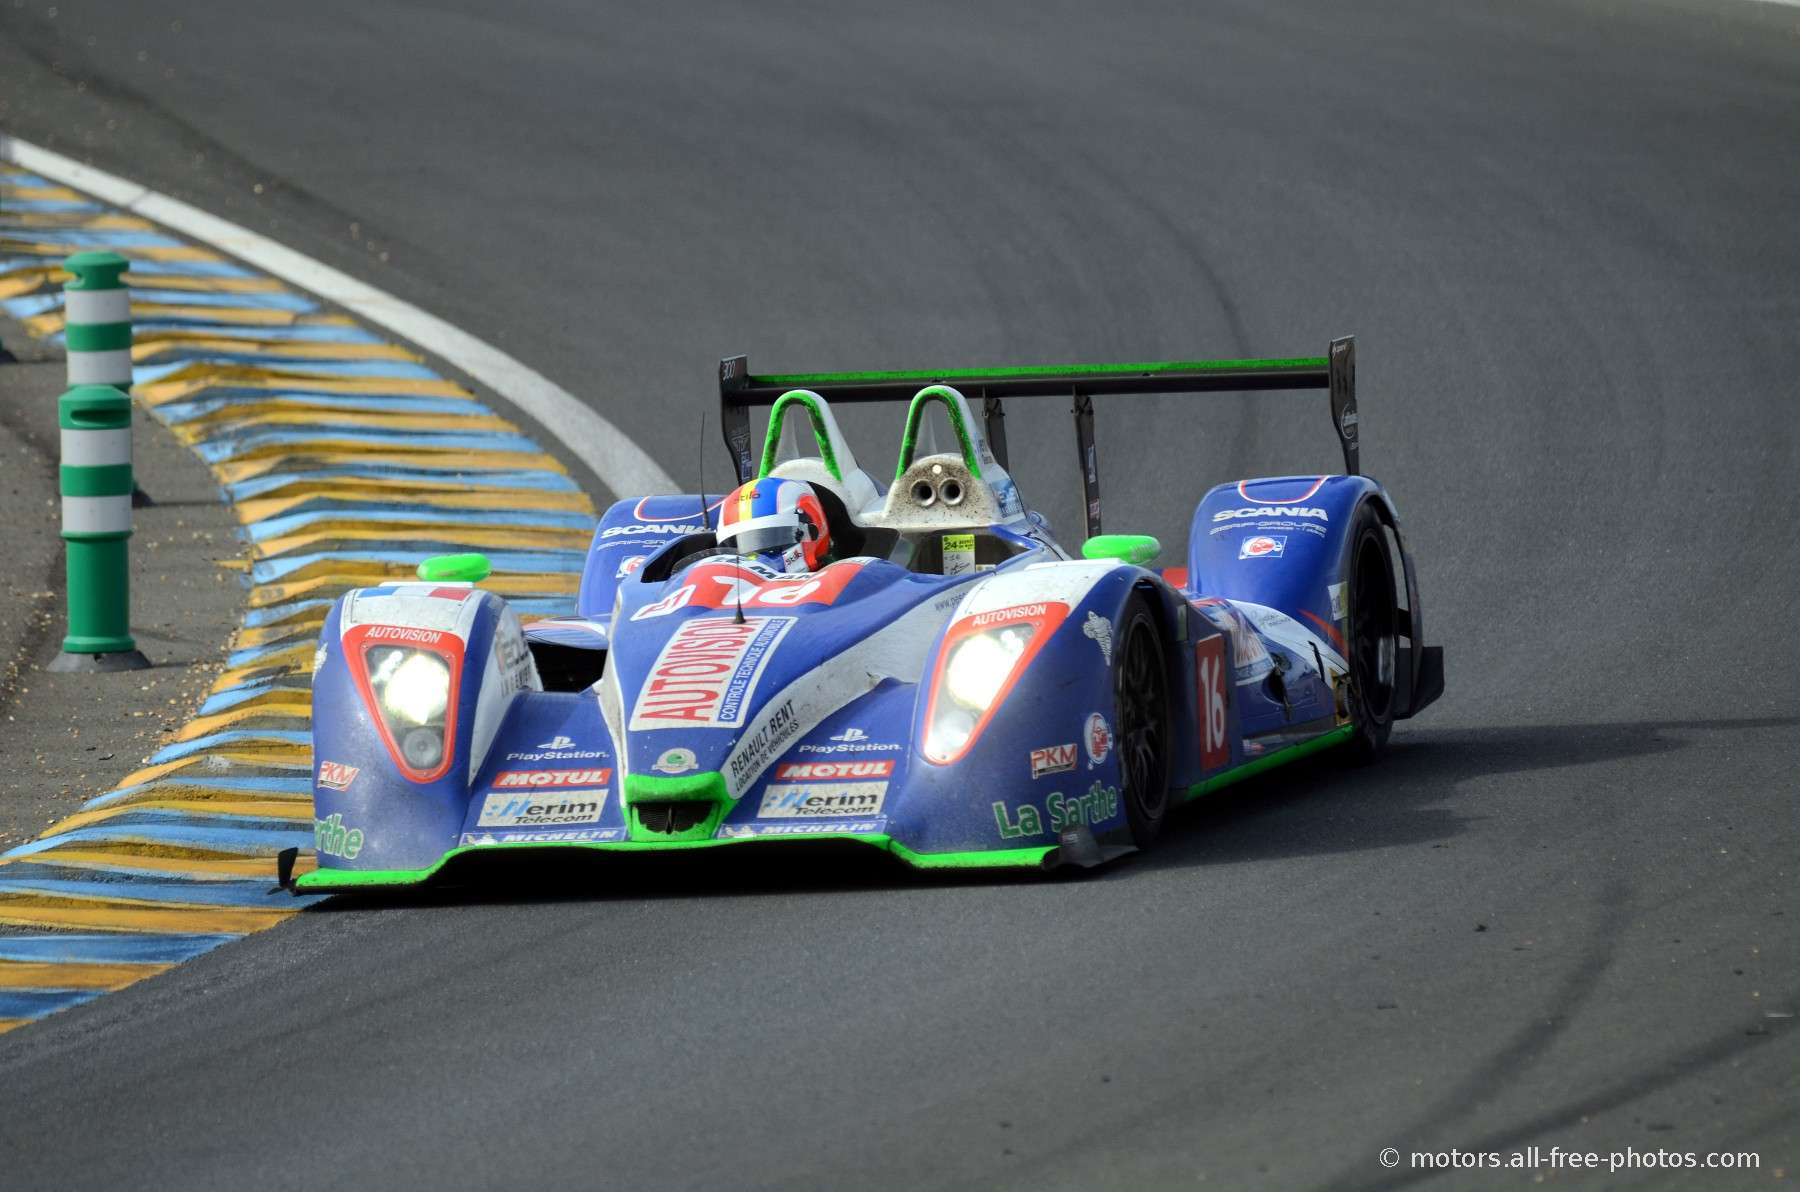 Pescarolo-Judd - Team Pescarolo